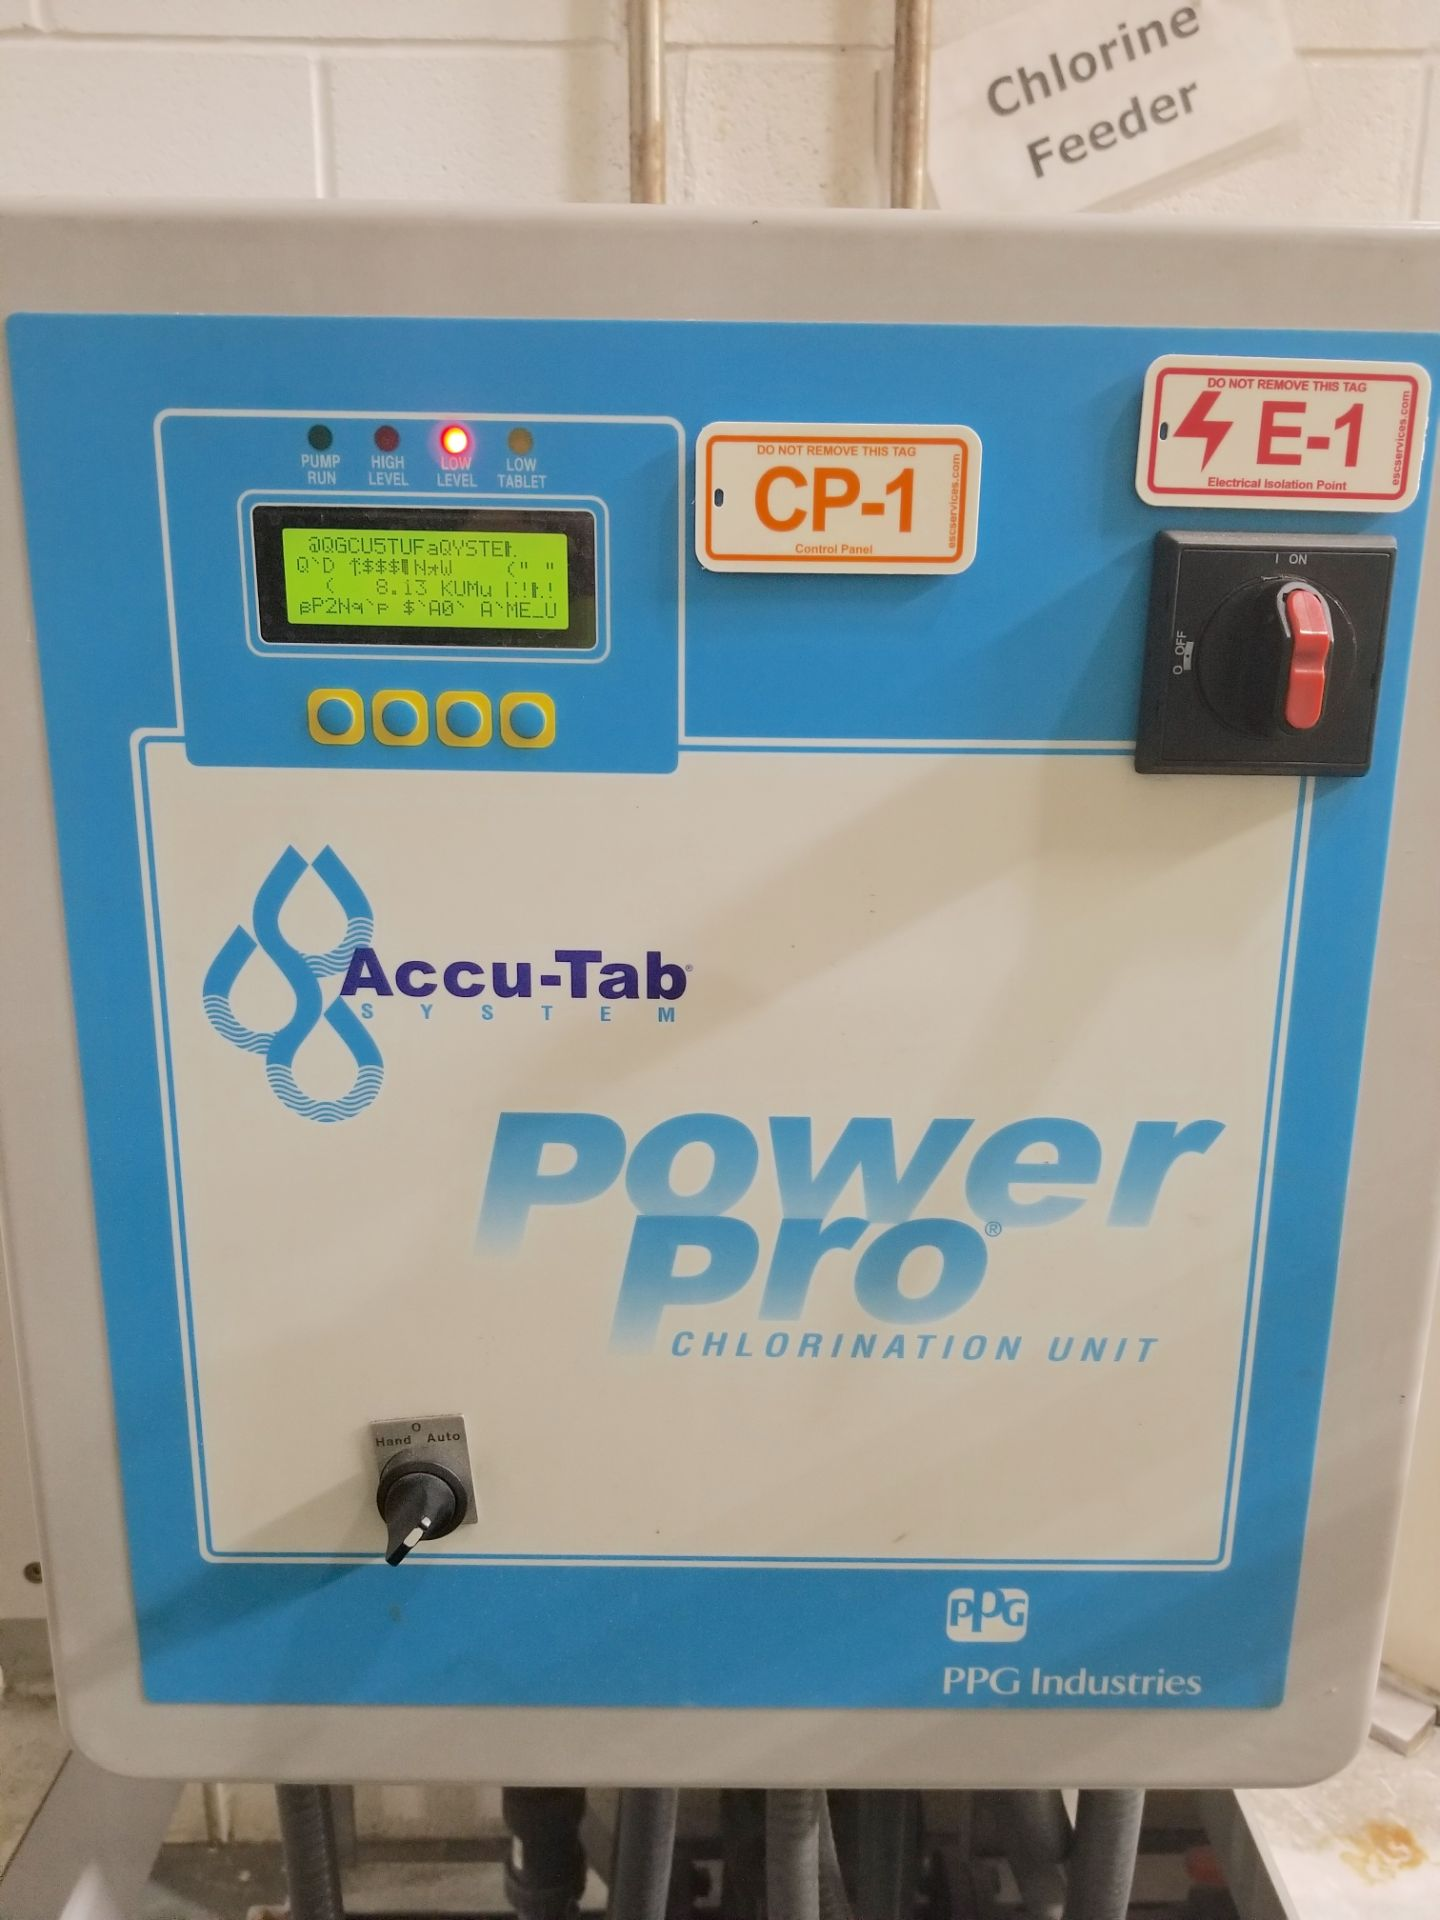 Accu-Tab System Chlorine Chem Feed - Image 2 of 4